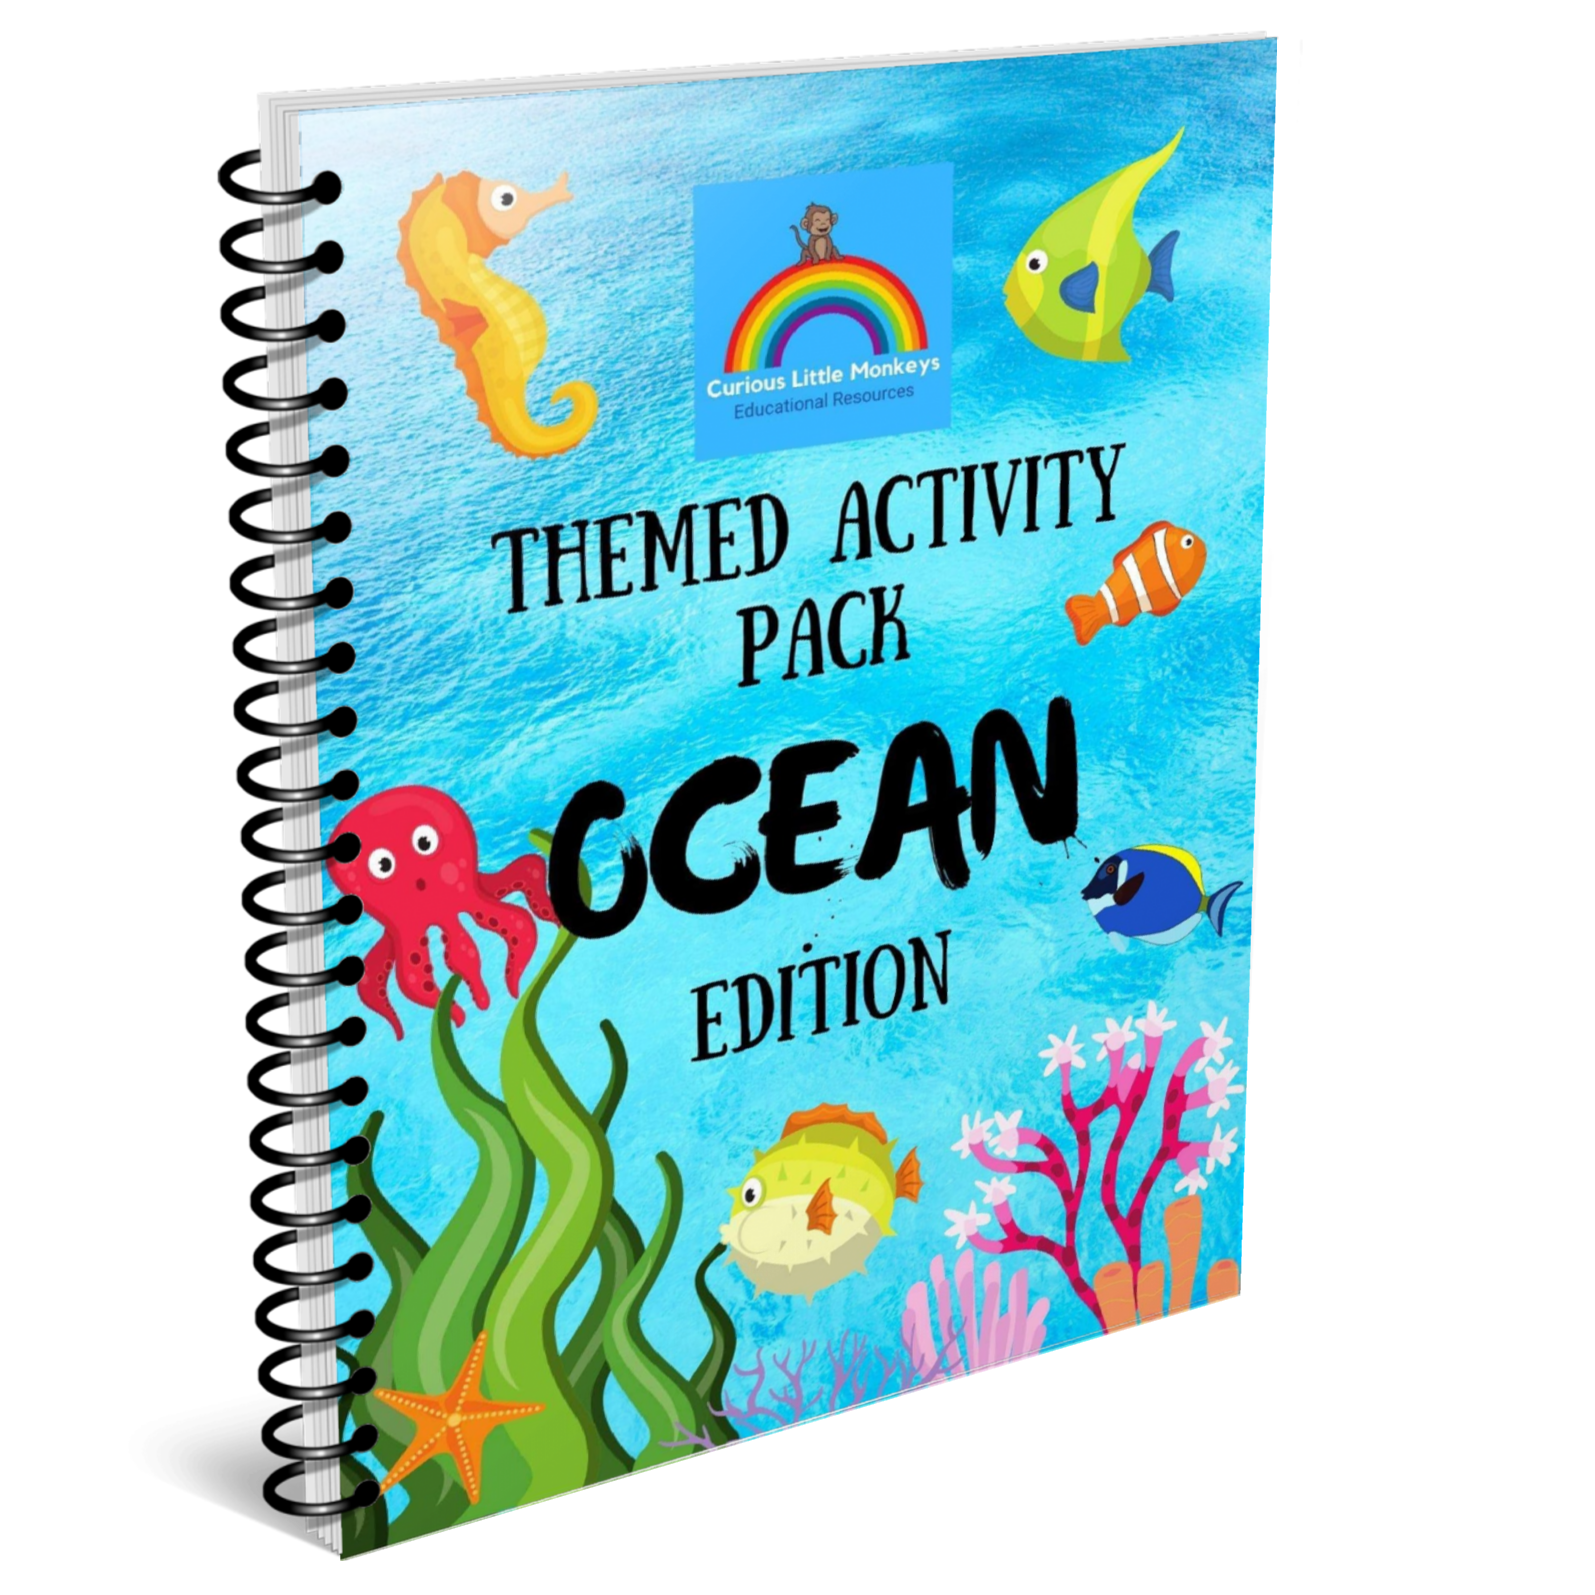 ocean activities for children